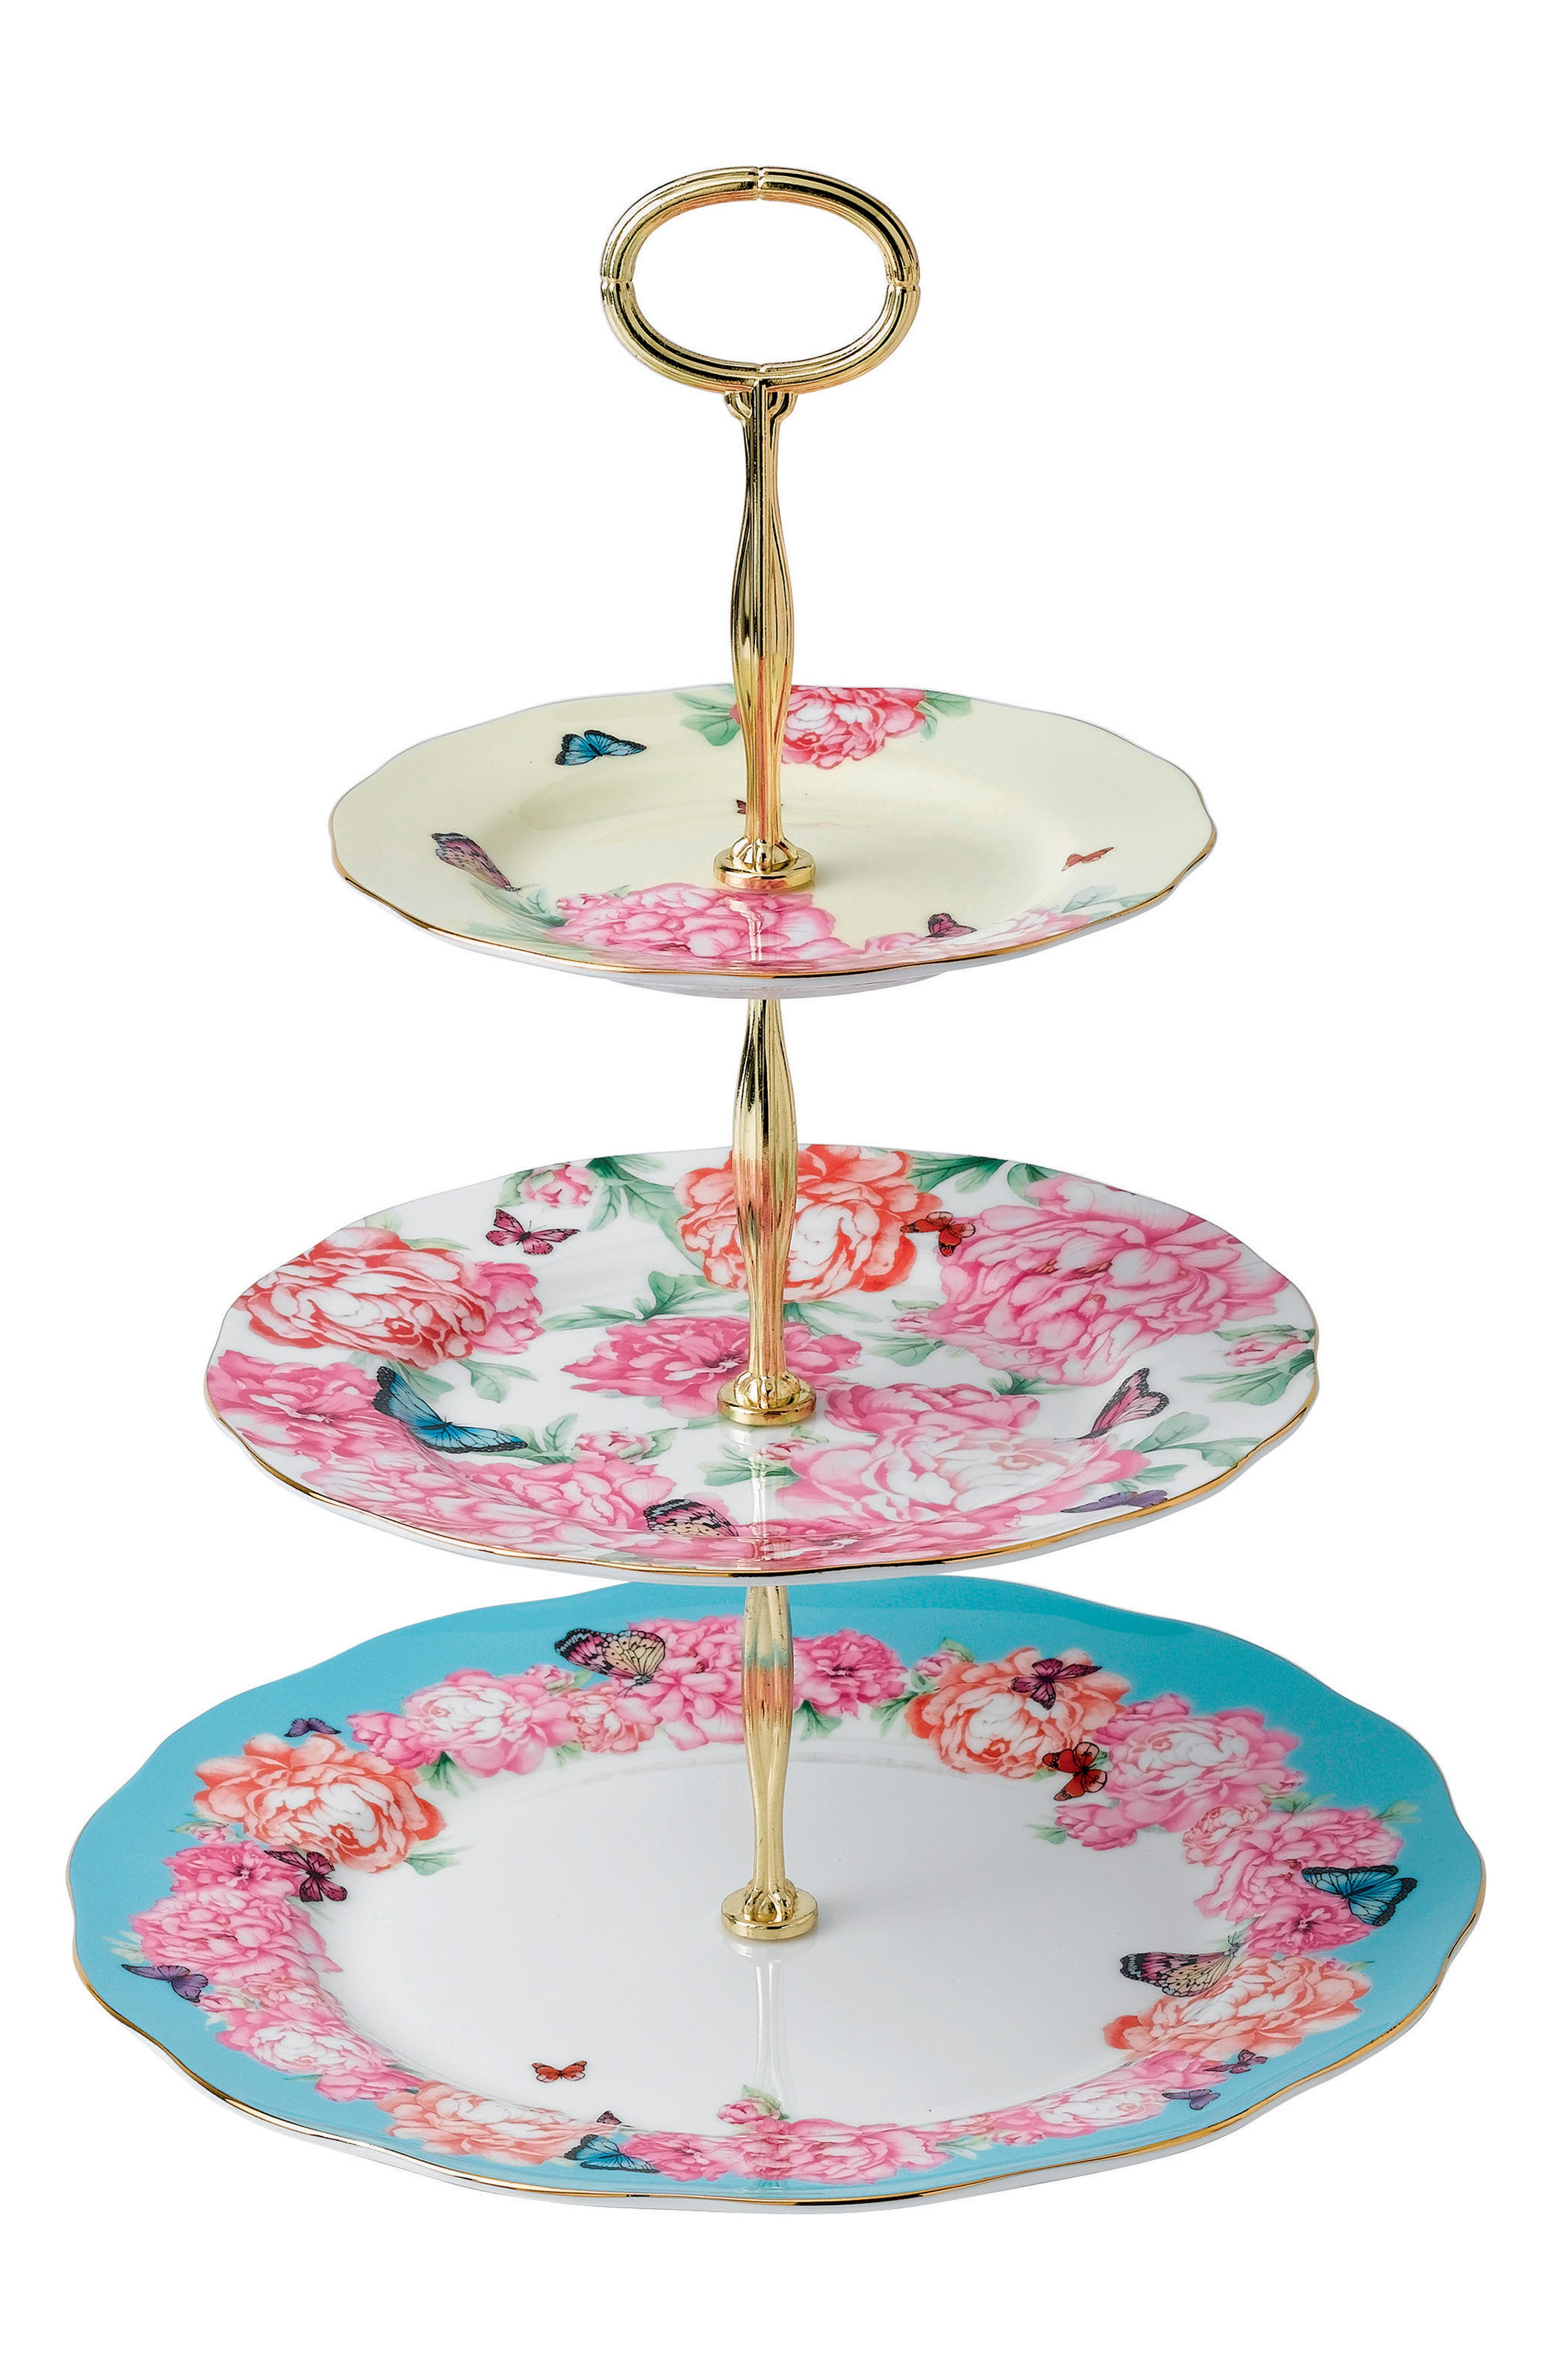 Mixed Accents 3-Tier Cake Stand,                             Main thumbnail 1, color,                             Multi